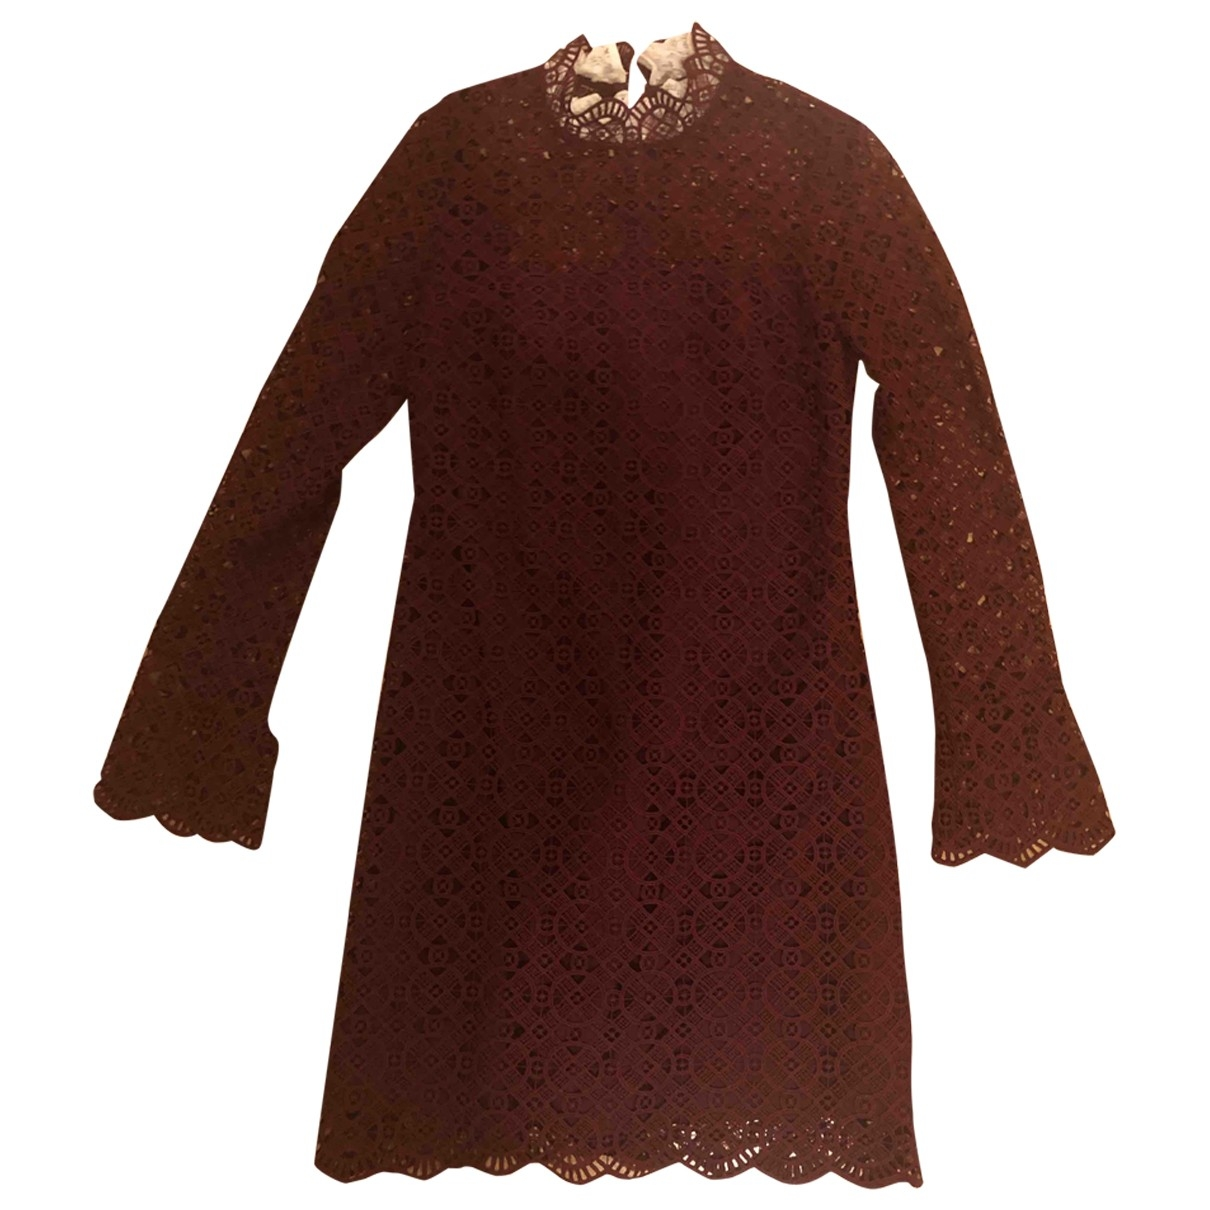 Sandro Fall Winter 2019 Burgundy Lace dress for Women 36 FR